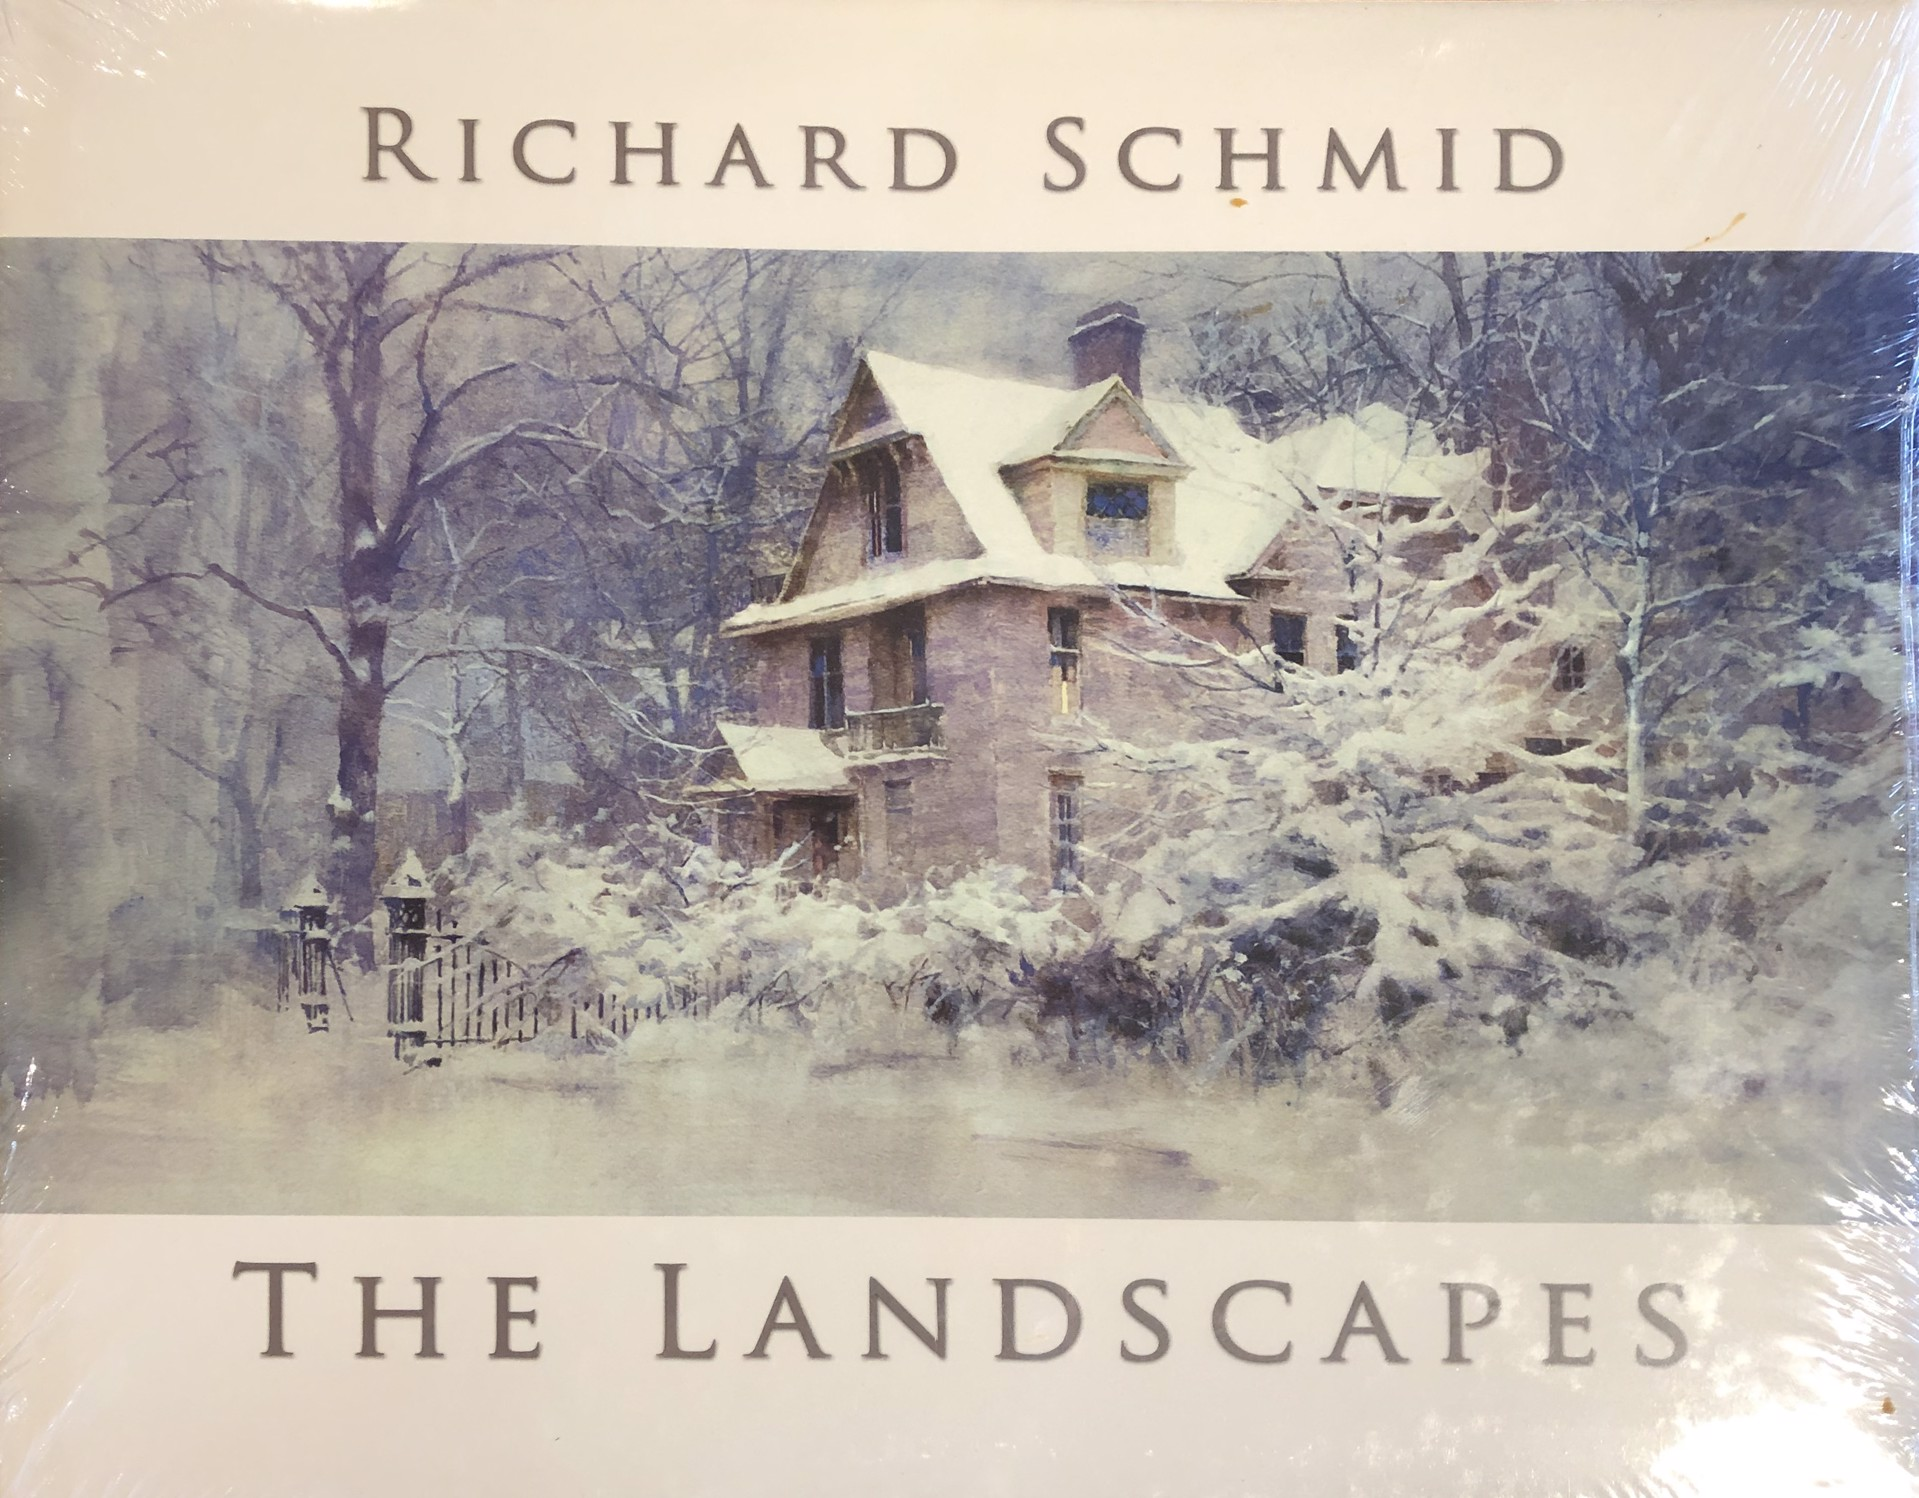 The Landscapes (Hardcover) by Richard Schmid